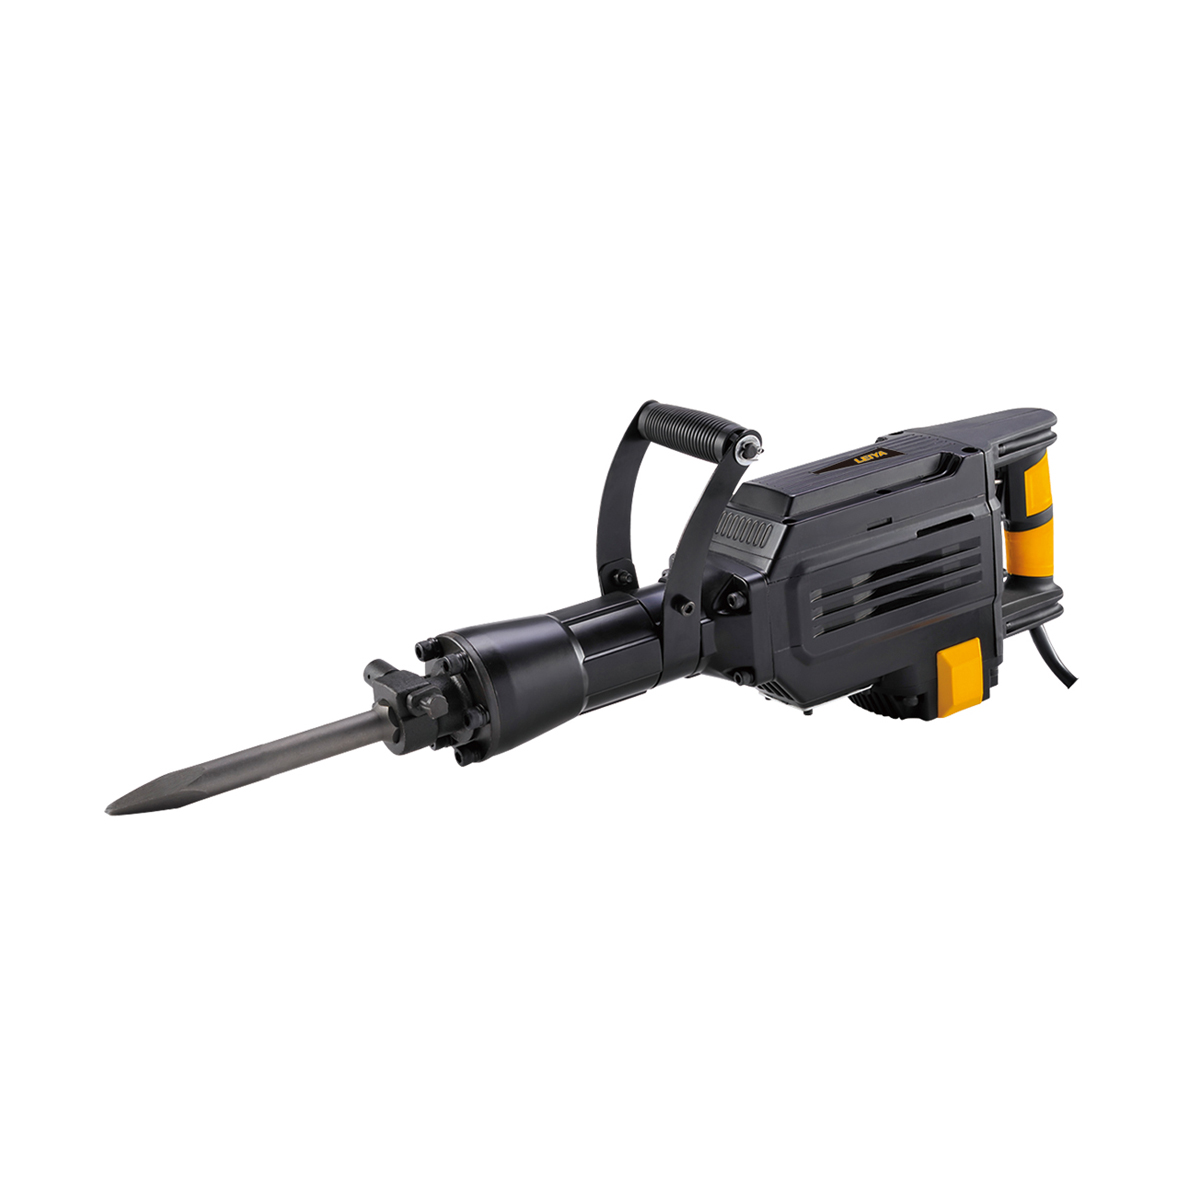 Hex.30 Chuck 1600w 45j High Quality Demolition Hammer Ly95-01, breaker Hammer / jack Hammer LY95-01